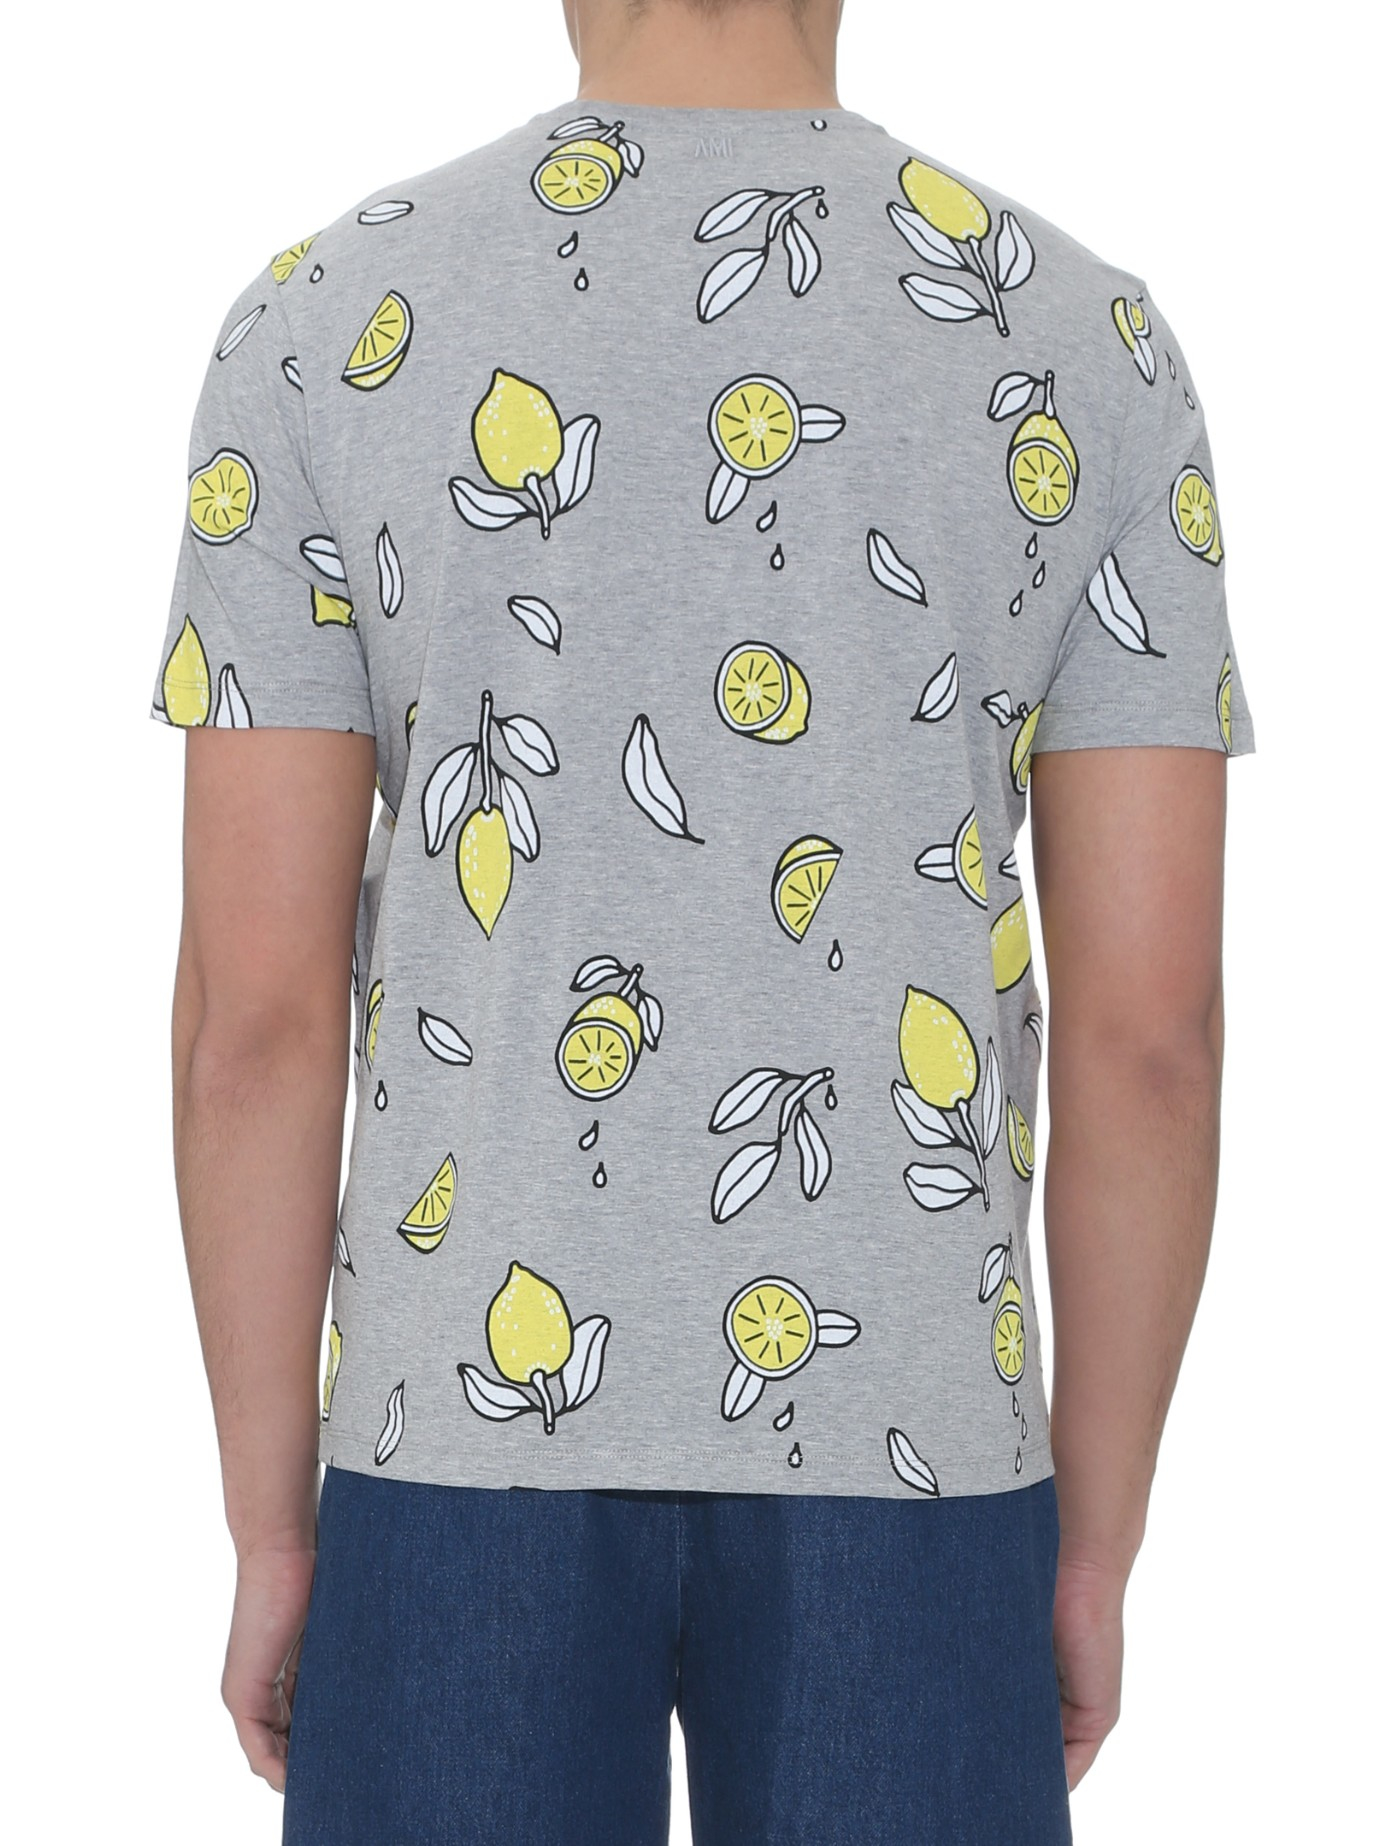 Ami Embroidered Cotton-jersey T-shirt - Yellow K4fln